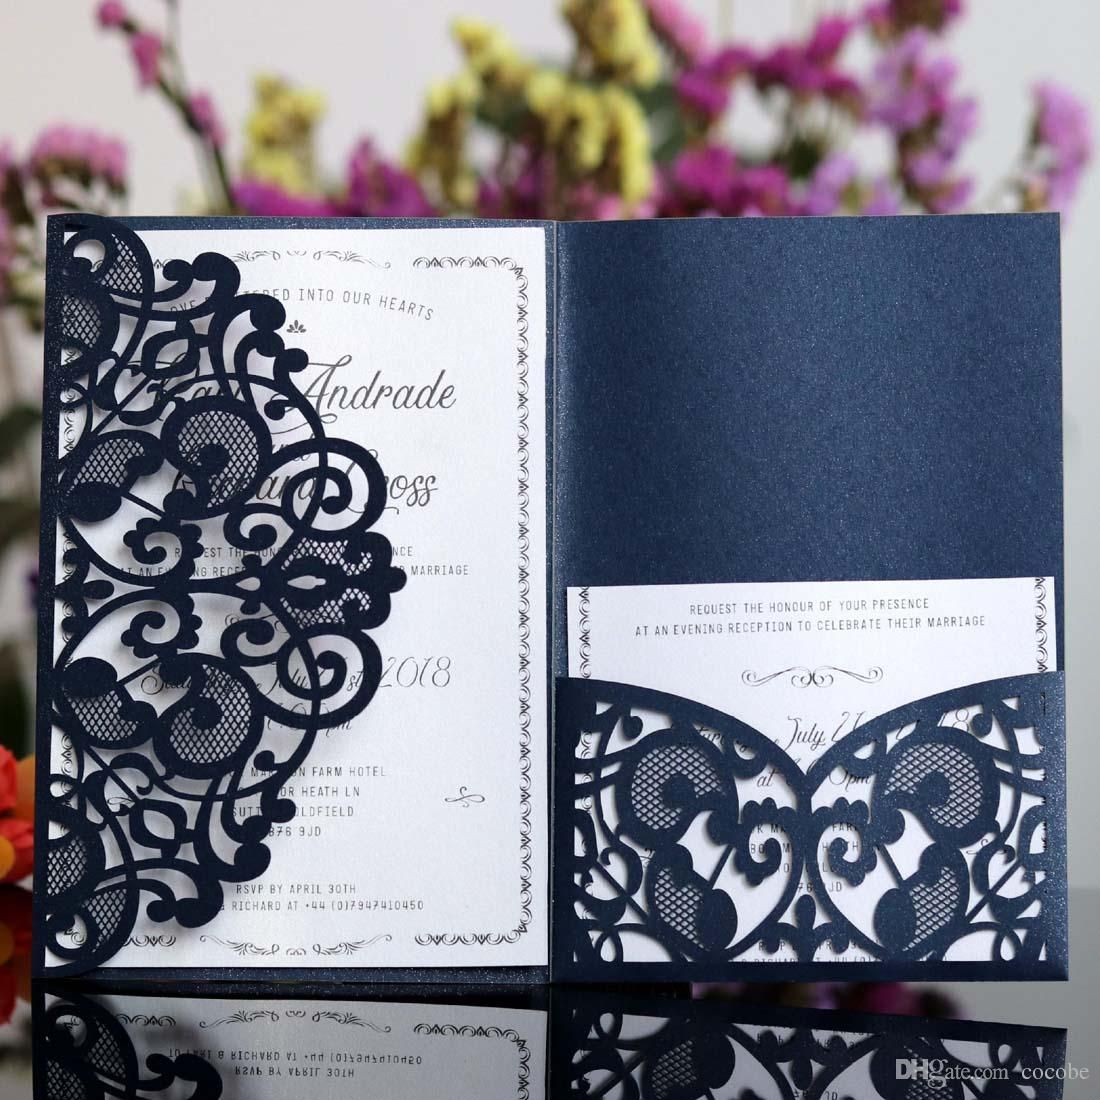 final cut pro wedding templates - laser cut wedding invitations white navy blue design